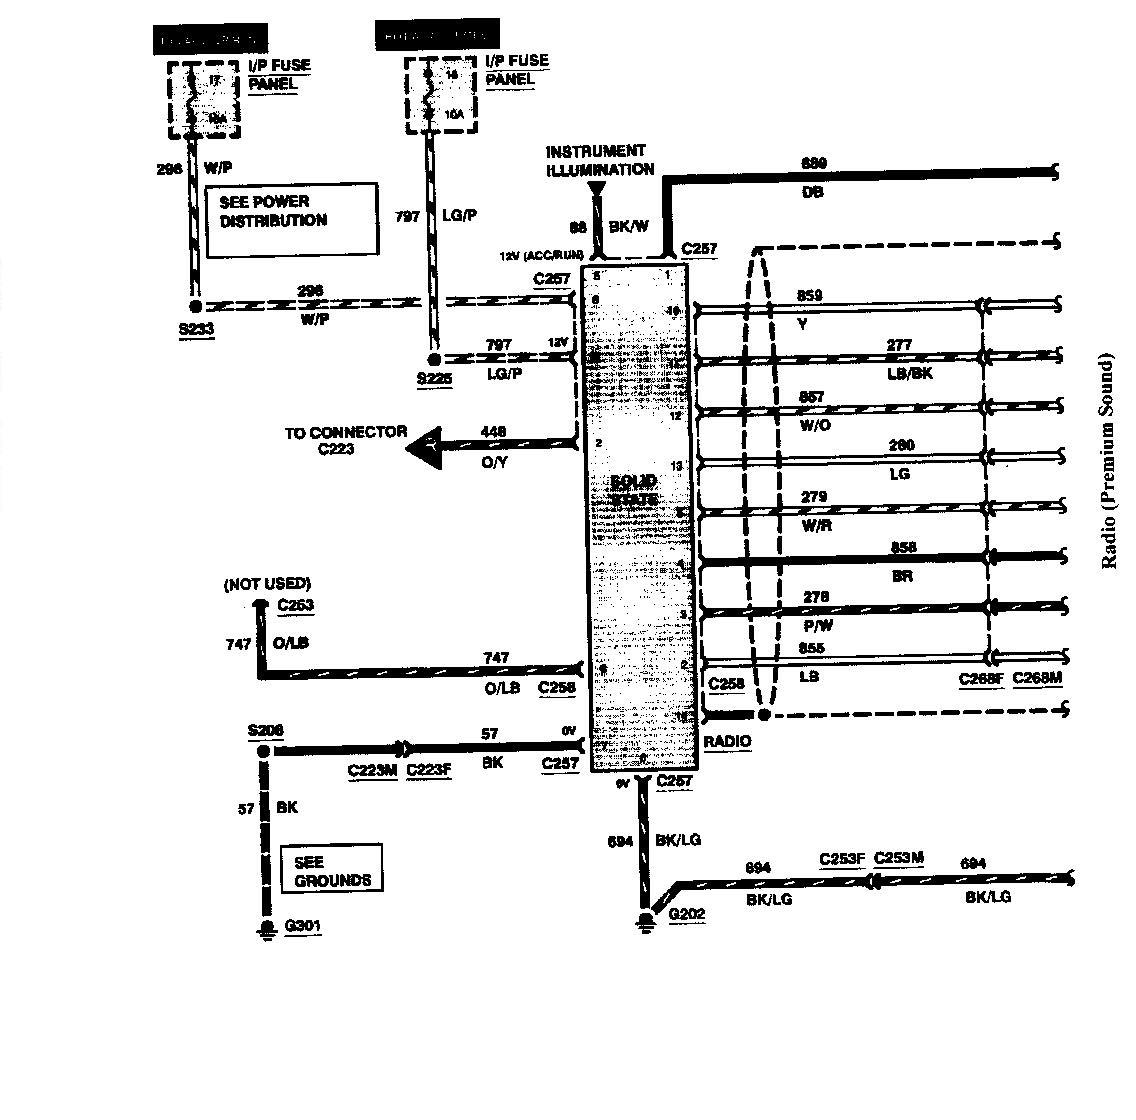 95 mark 8 jbl wiring diagram needed lincolns online message forum rh lincolnsonline com